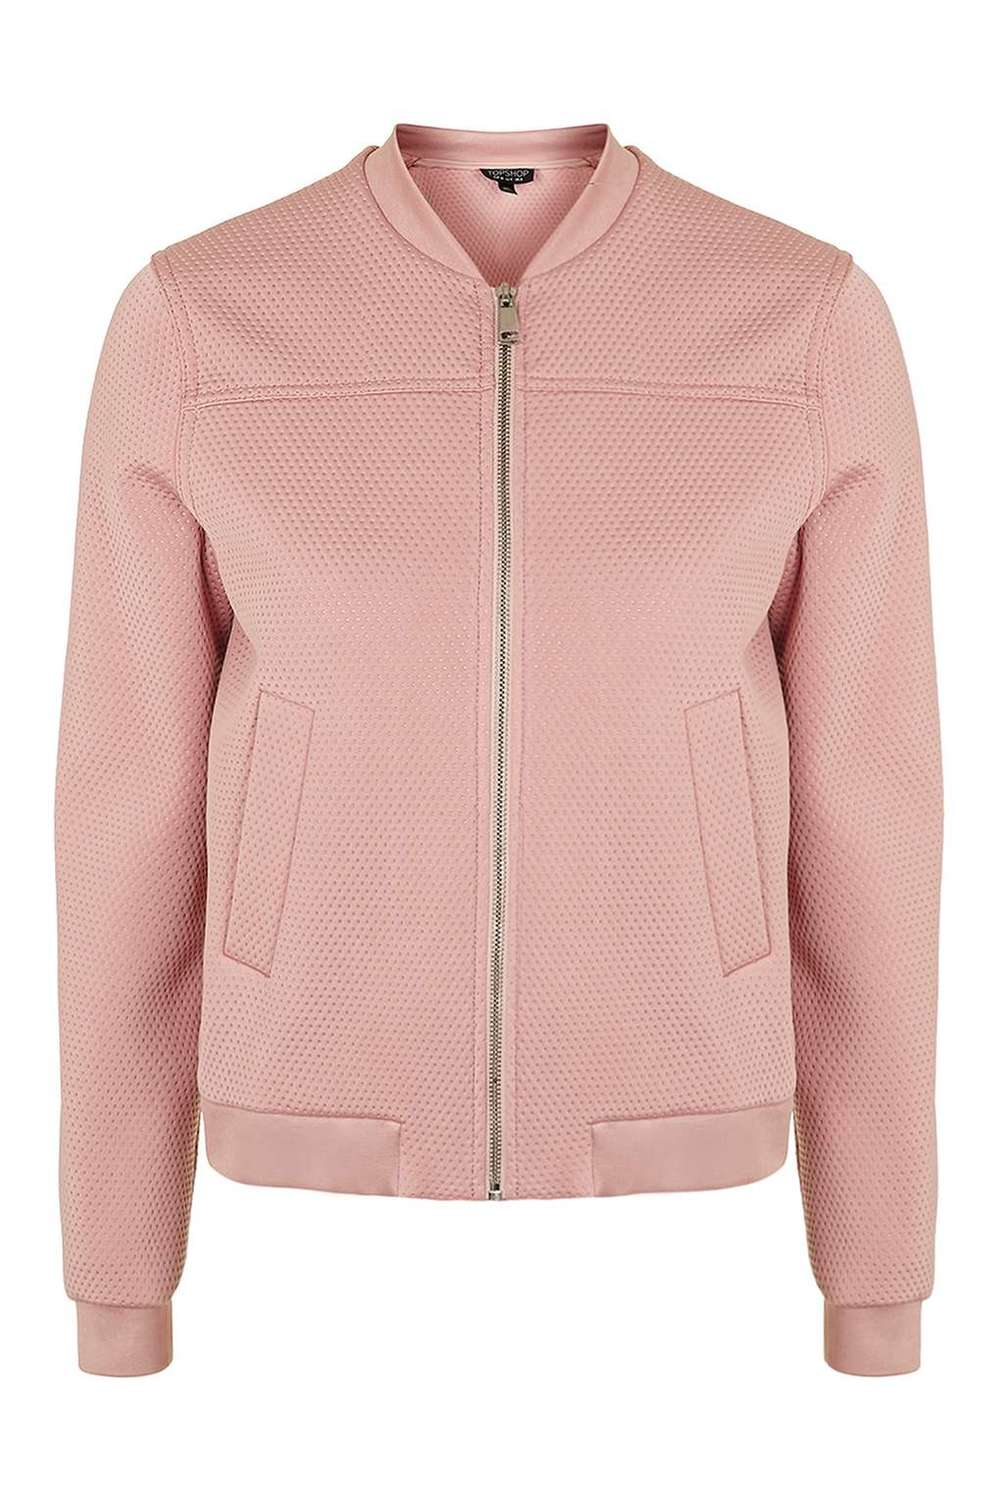 Textured Lightweight Bomber Jacket TOPSHOP